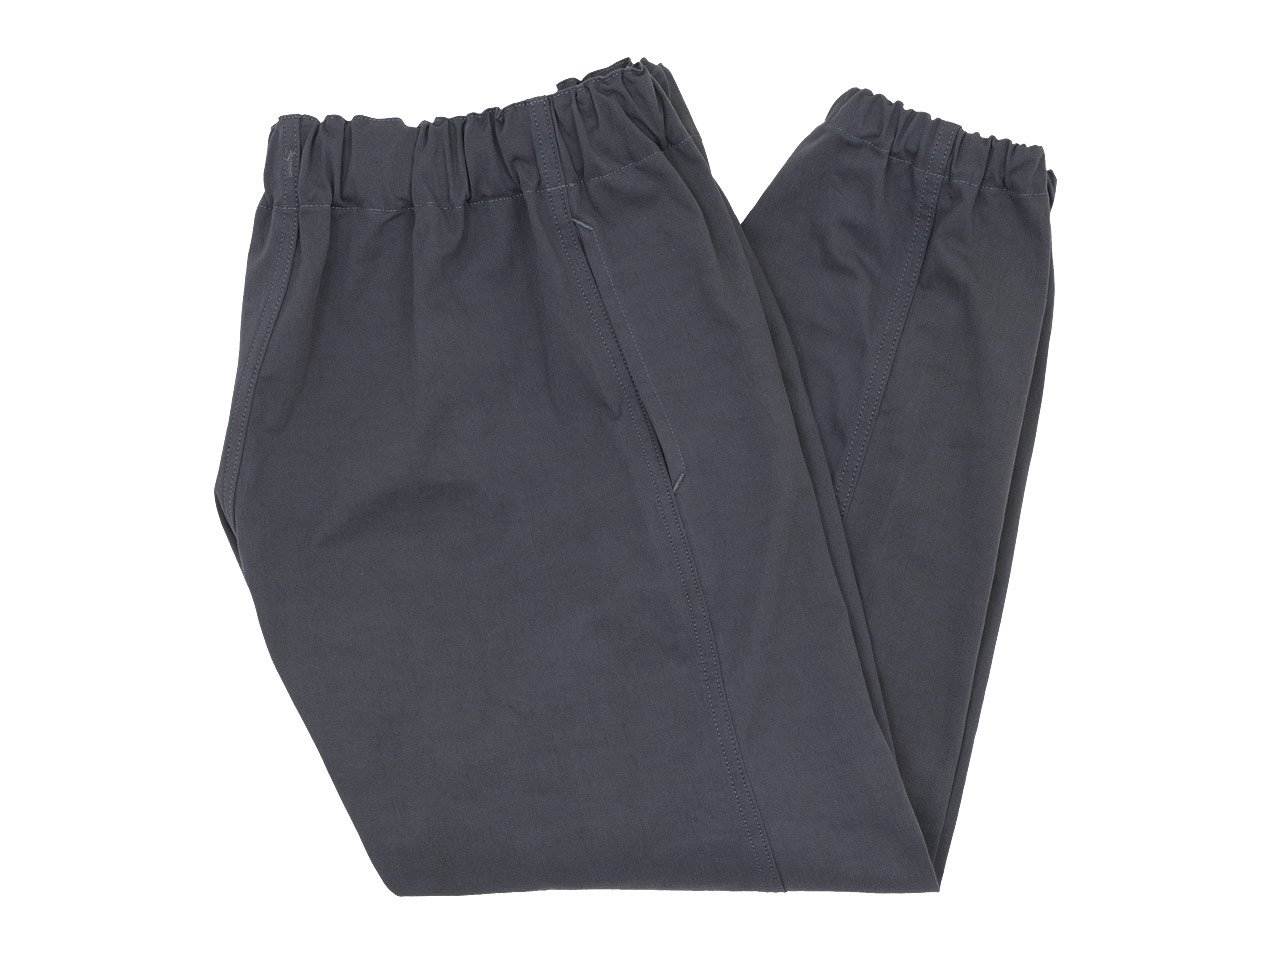 TUKI gum pants 35GERMAN GRAY